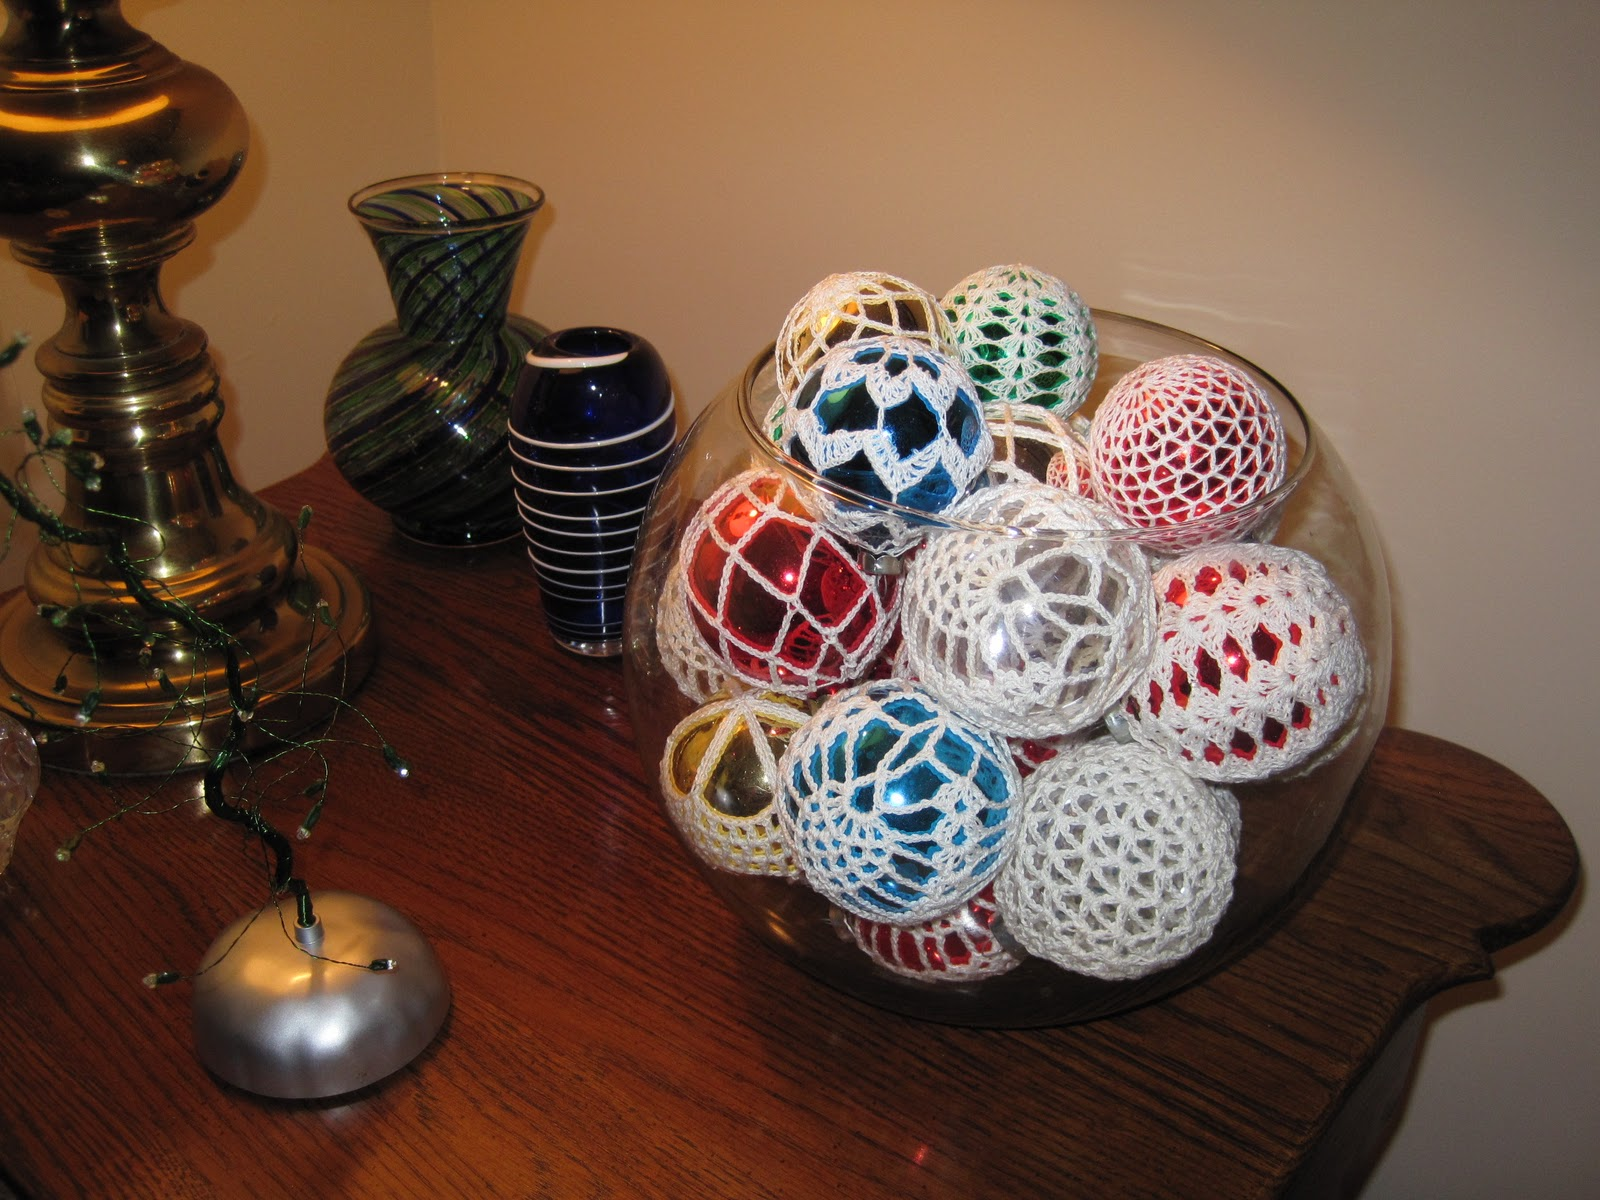 Crochet Ornament Covers - EzineArticles Submission - Submit Your